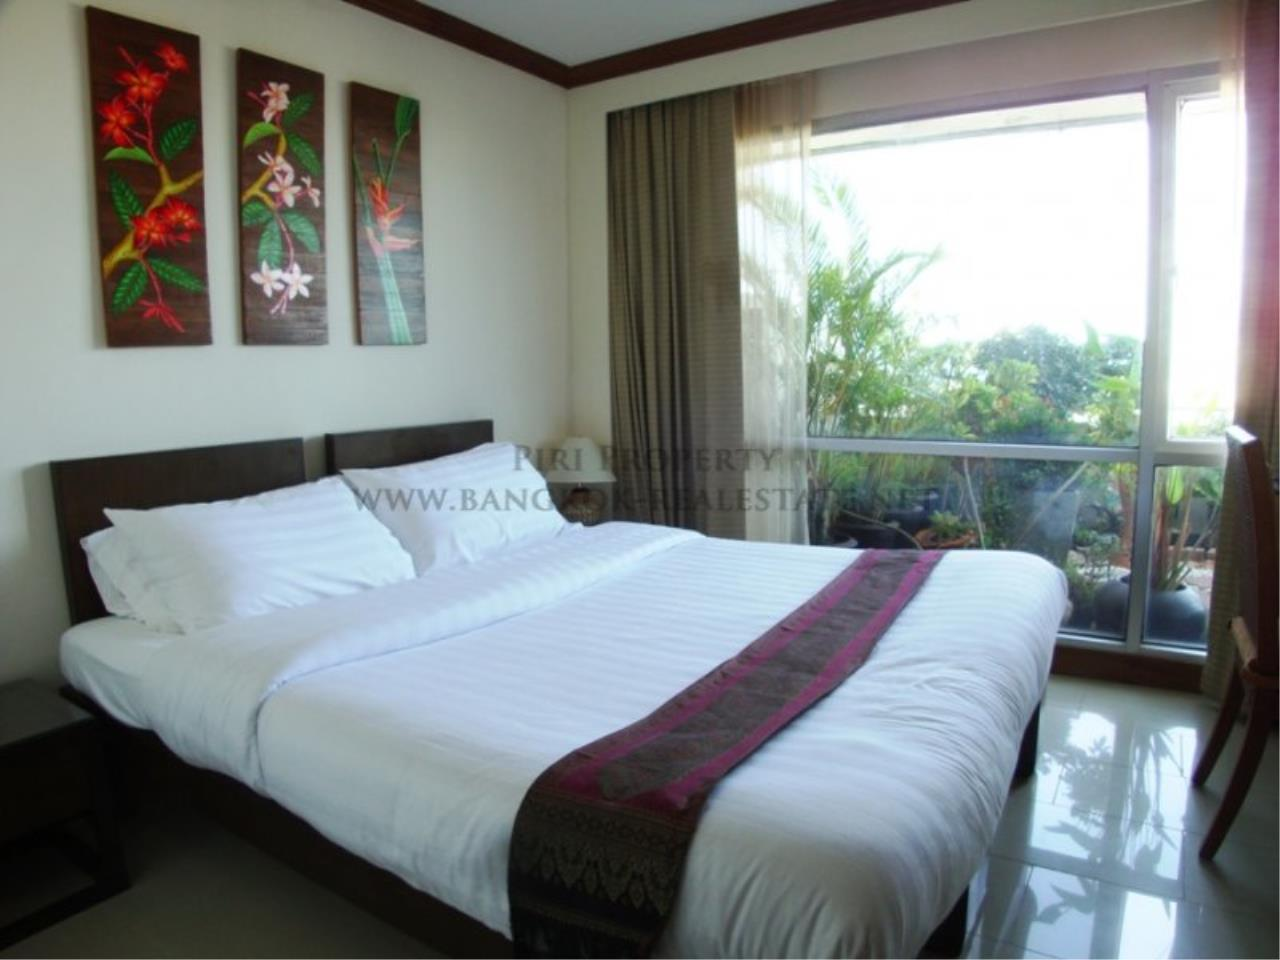 Piri Property Agency's 2 Bedroom Condo with great Outdoor Terrace of 40 SQM - Just a 5 minute walk to the BTS 5